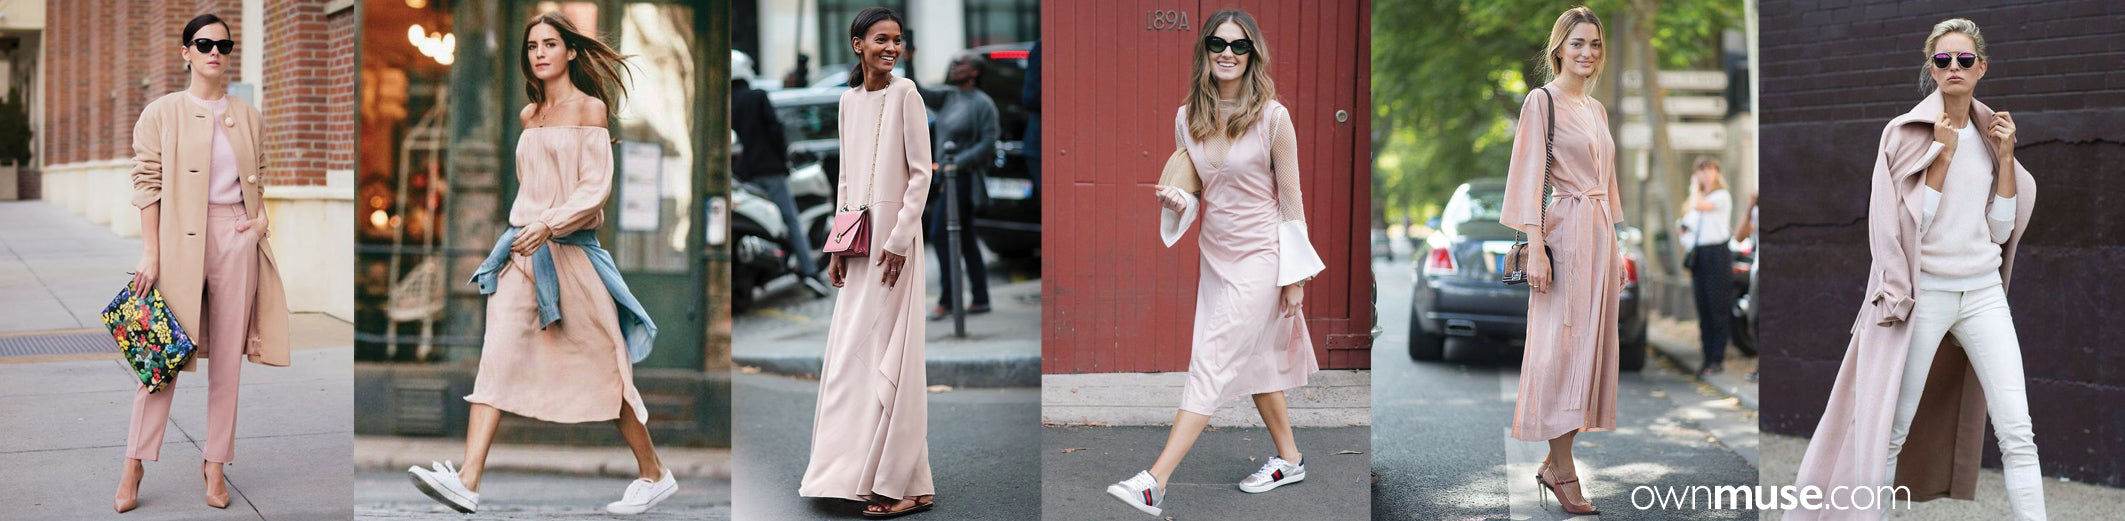 Street style fashion and style in base colour dusty pink featured on ownmuse.com